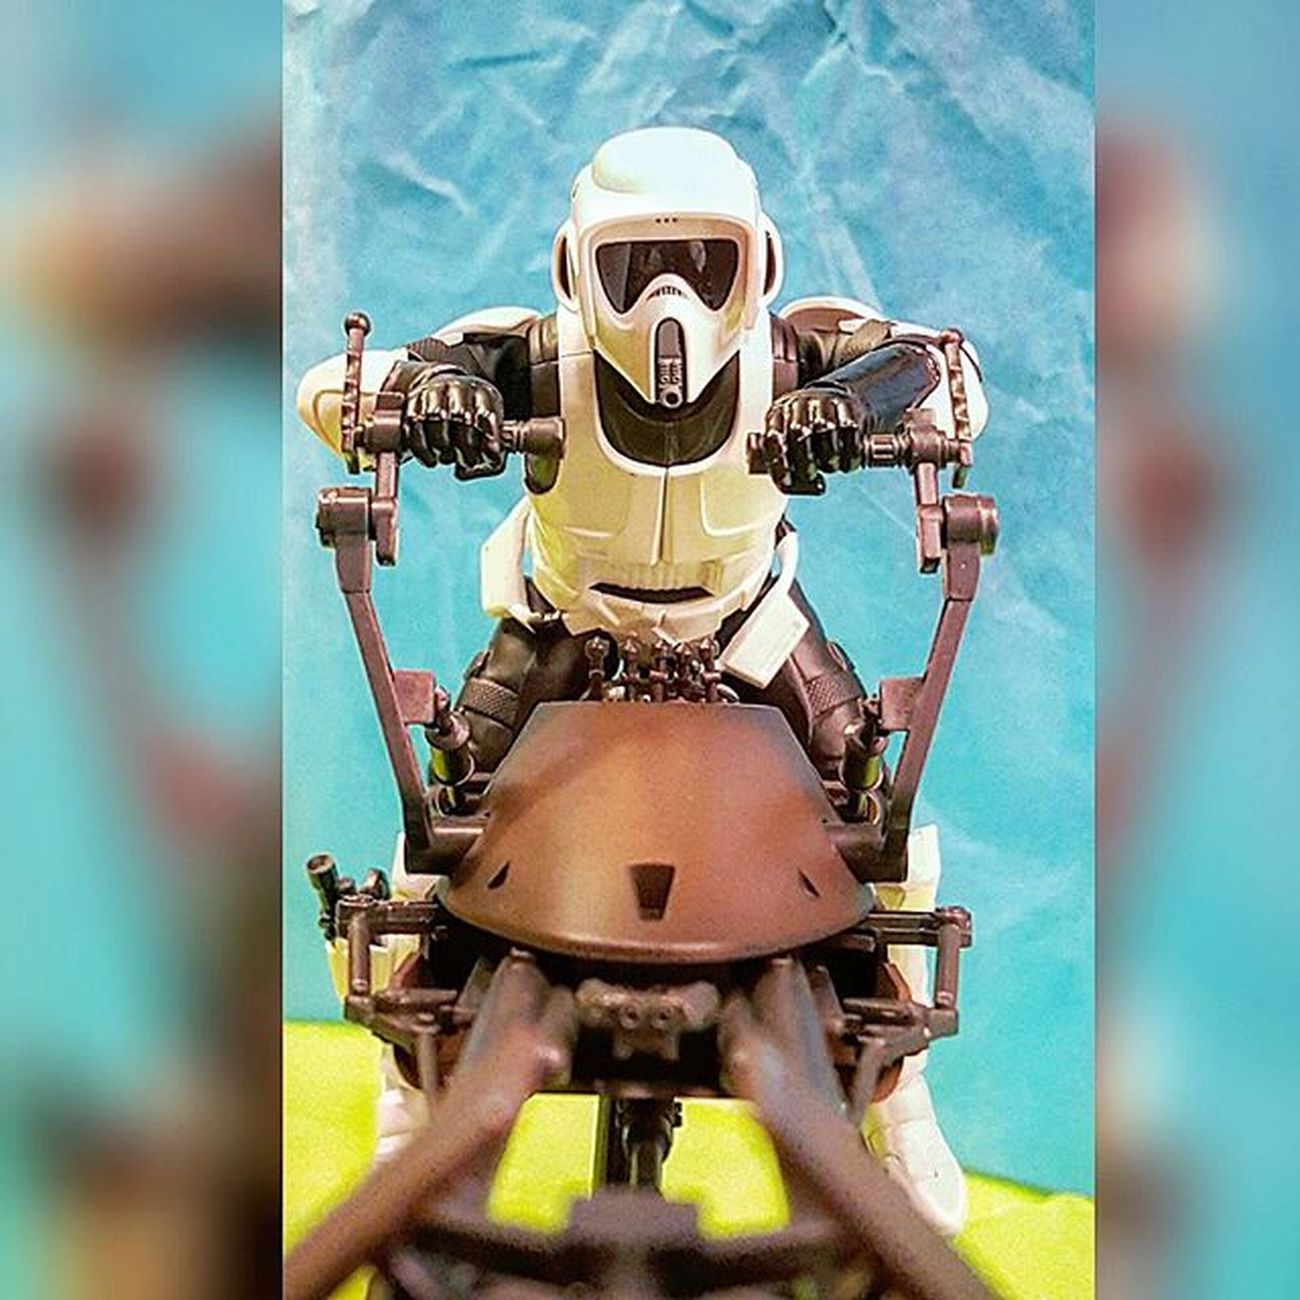 More coming right at ya.... Starwars Actionfigures BANDAI SHfiguarts Starwarstoys Toys Toyphotography Scouttrooper Speederbike Actionfigure Actionfigurephotography Toyart Toyartistry StarWars6inch Starwarsactionfigurephotography